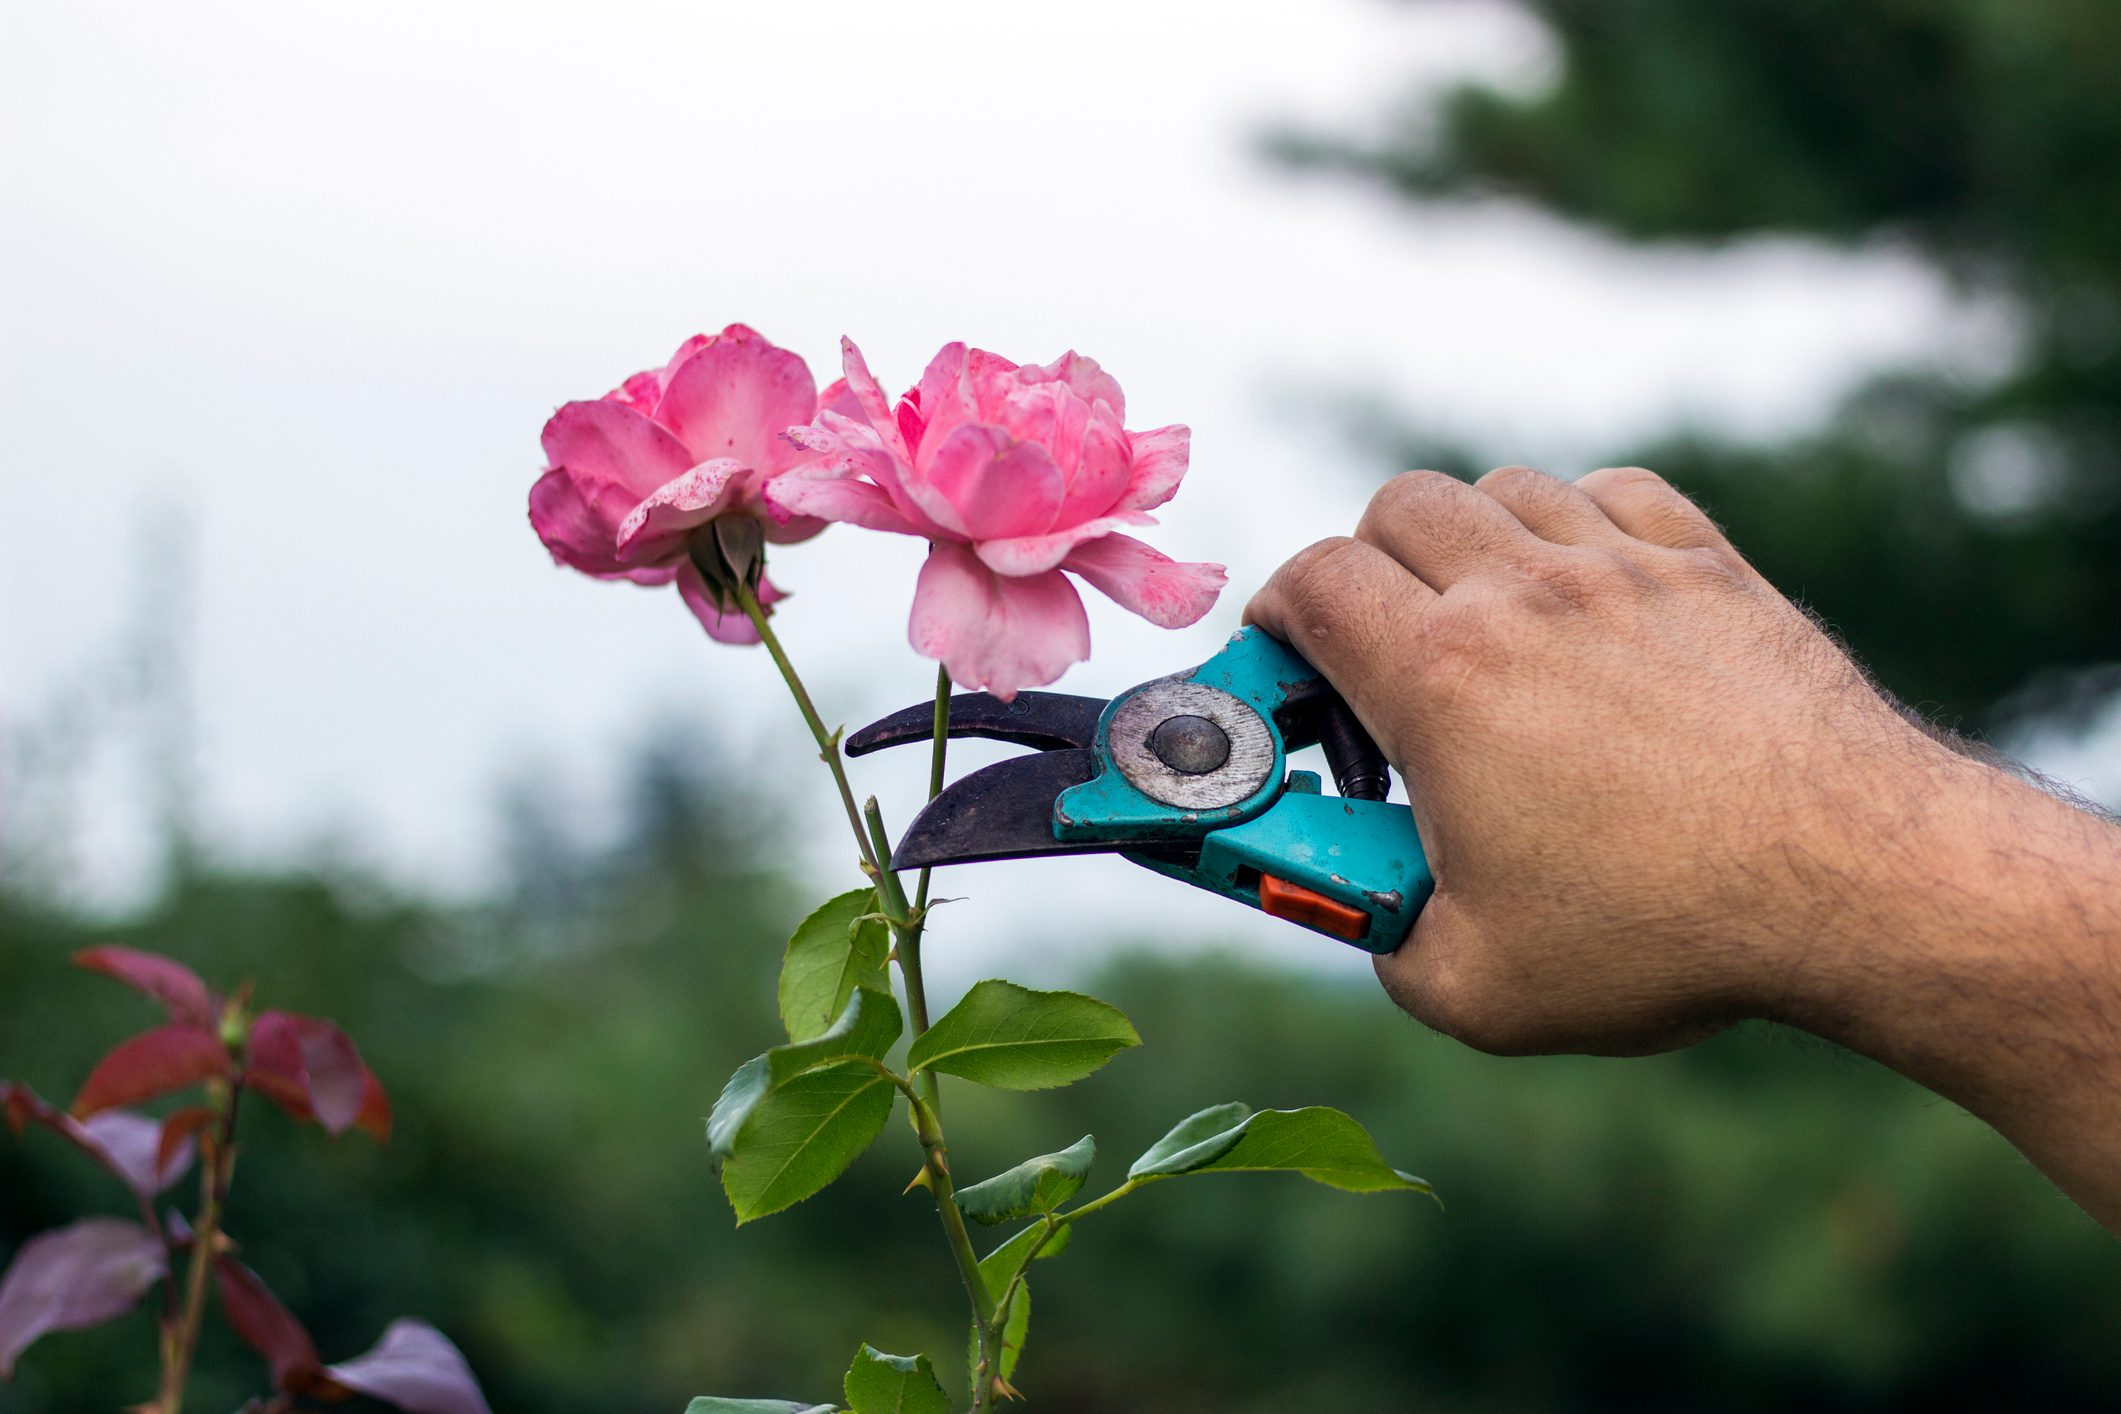 Close-Up Of Hand Cutting Rose Plant With Pruning Shears Outdoors